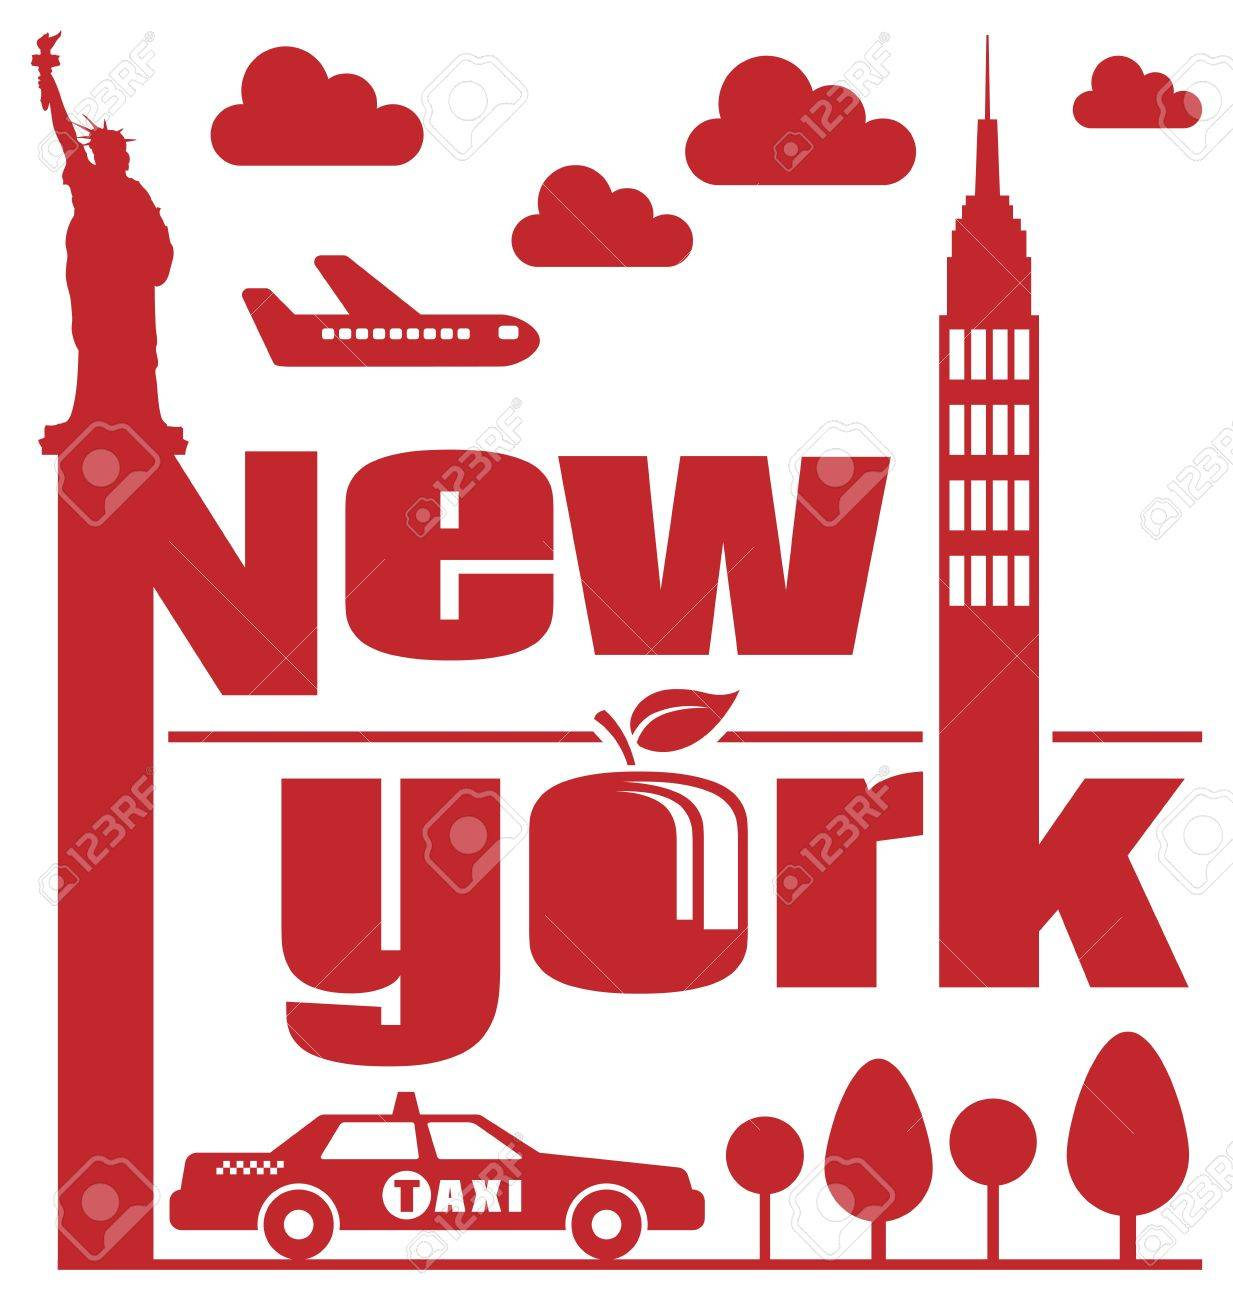 New York Abstract Stock Vector - 16272086